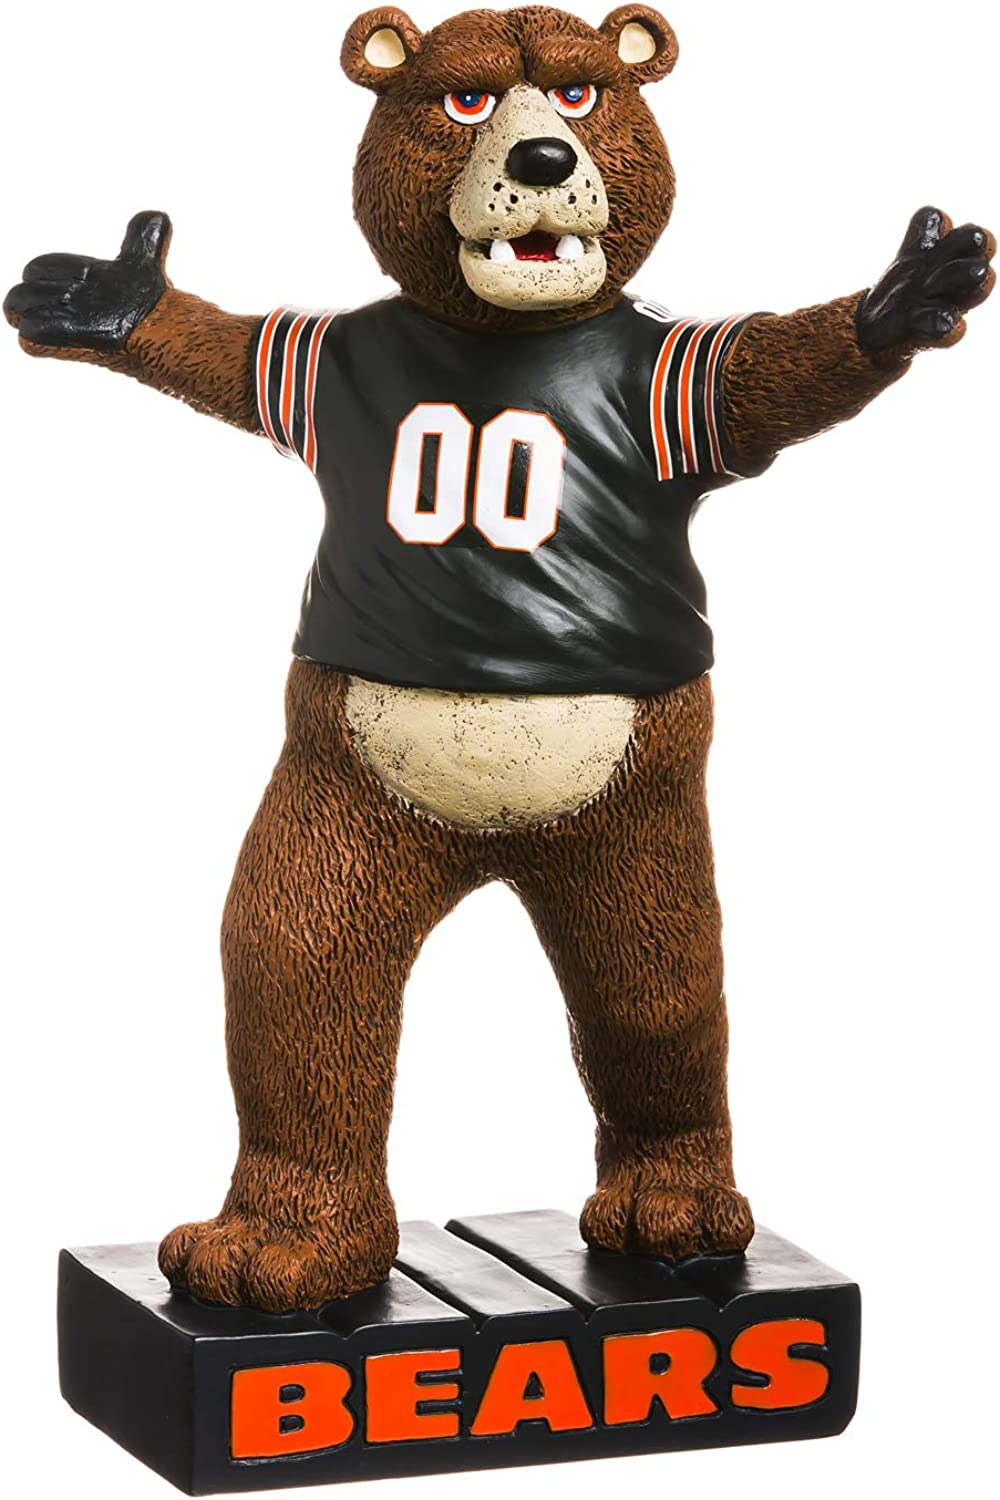 Team Sports America NFL Chicago Bears Fun Colorful Mascot Statue 12 Inches Tall